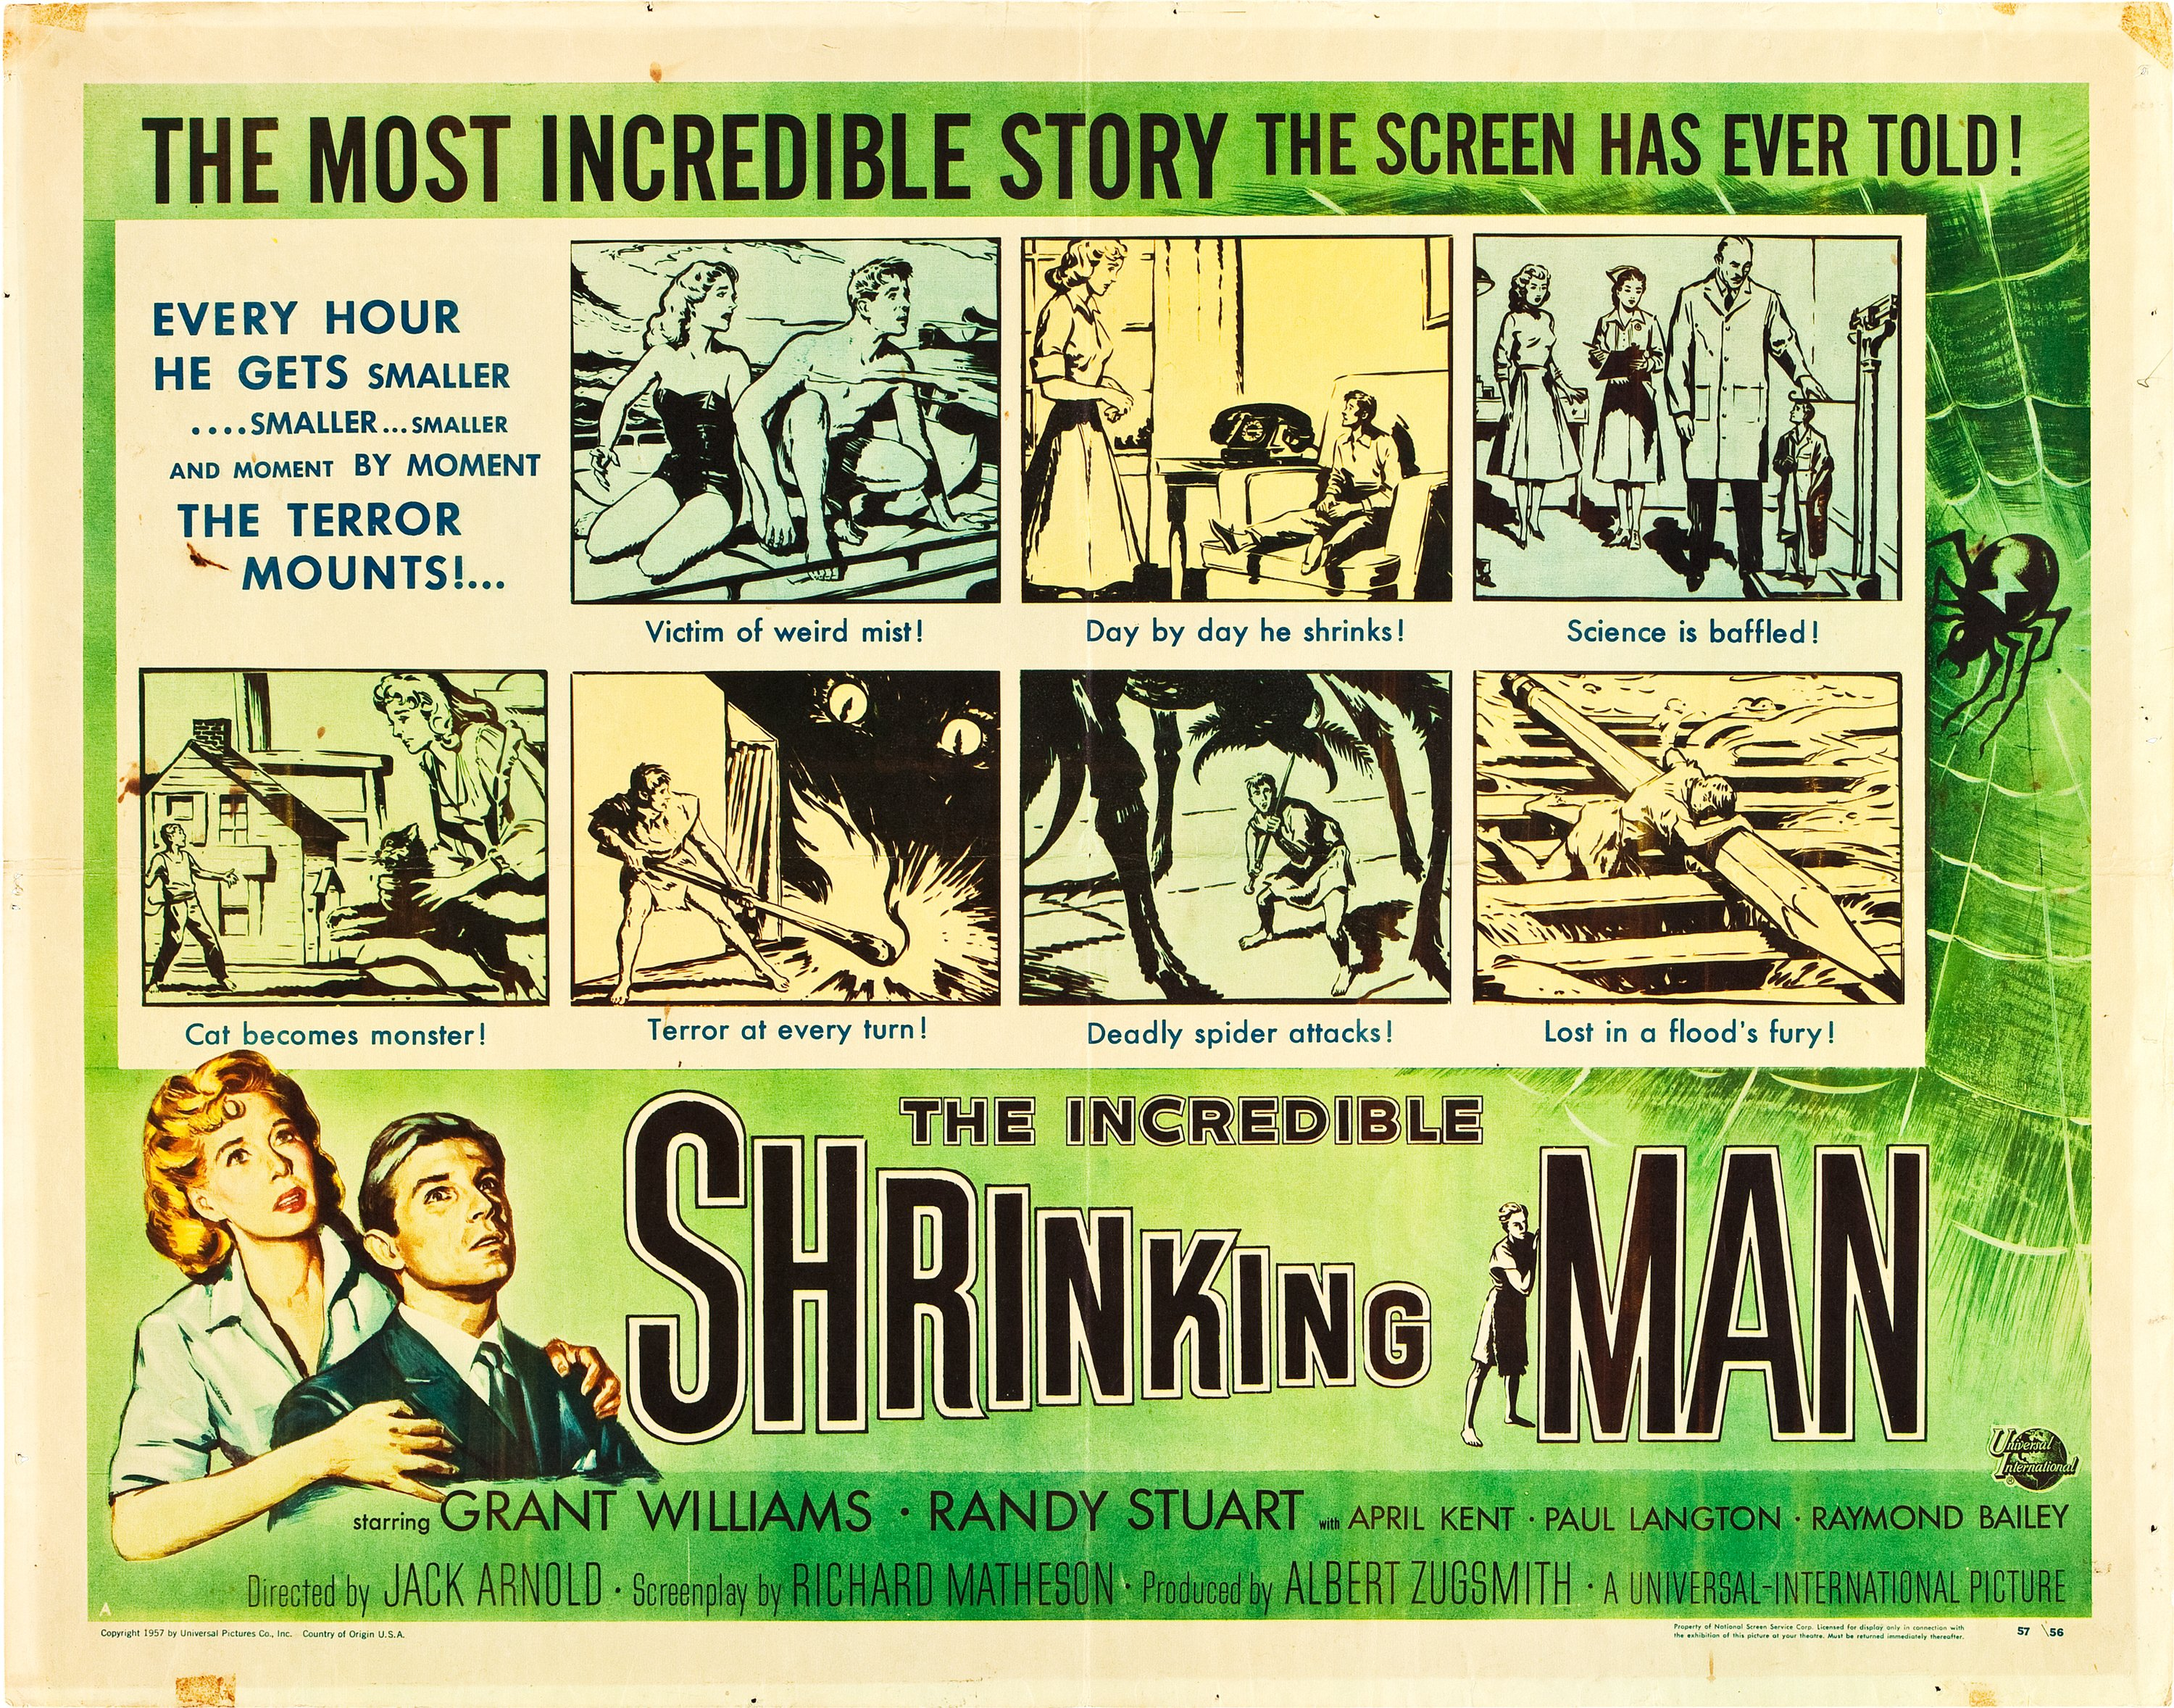 THE INCREDIBLE SHRINKING MAN MOVIE POSTER Rare Vintage